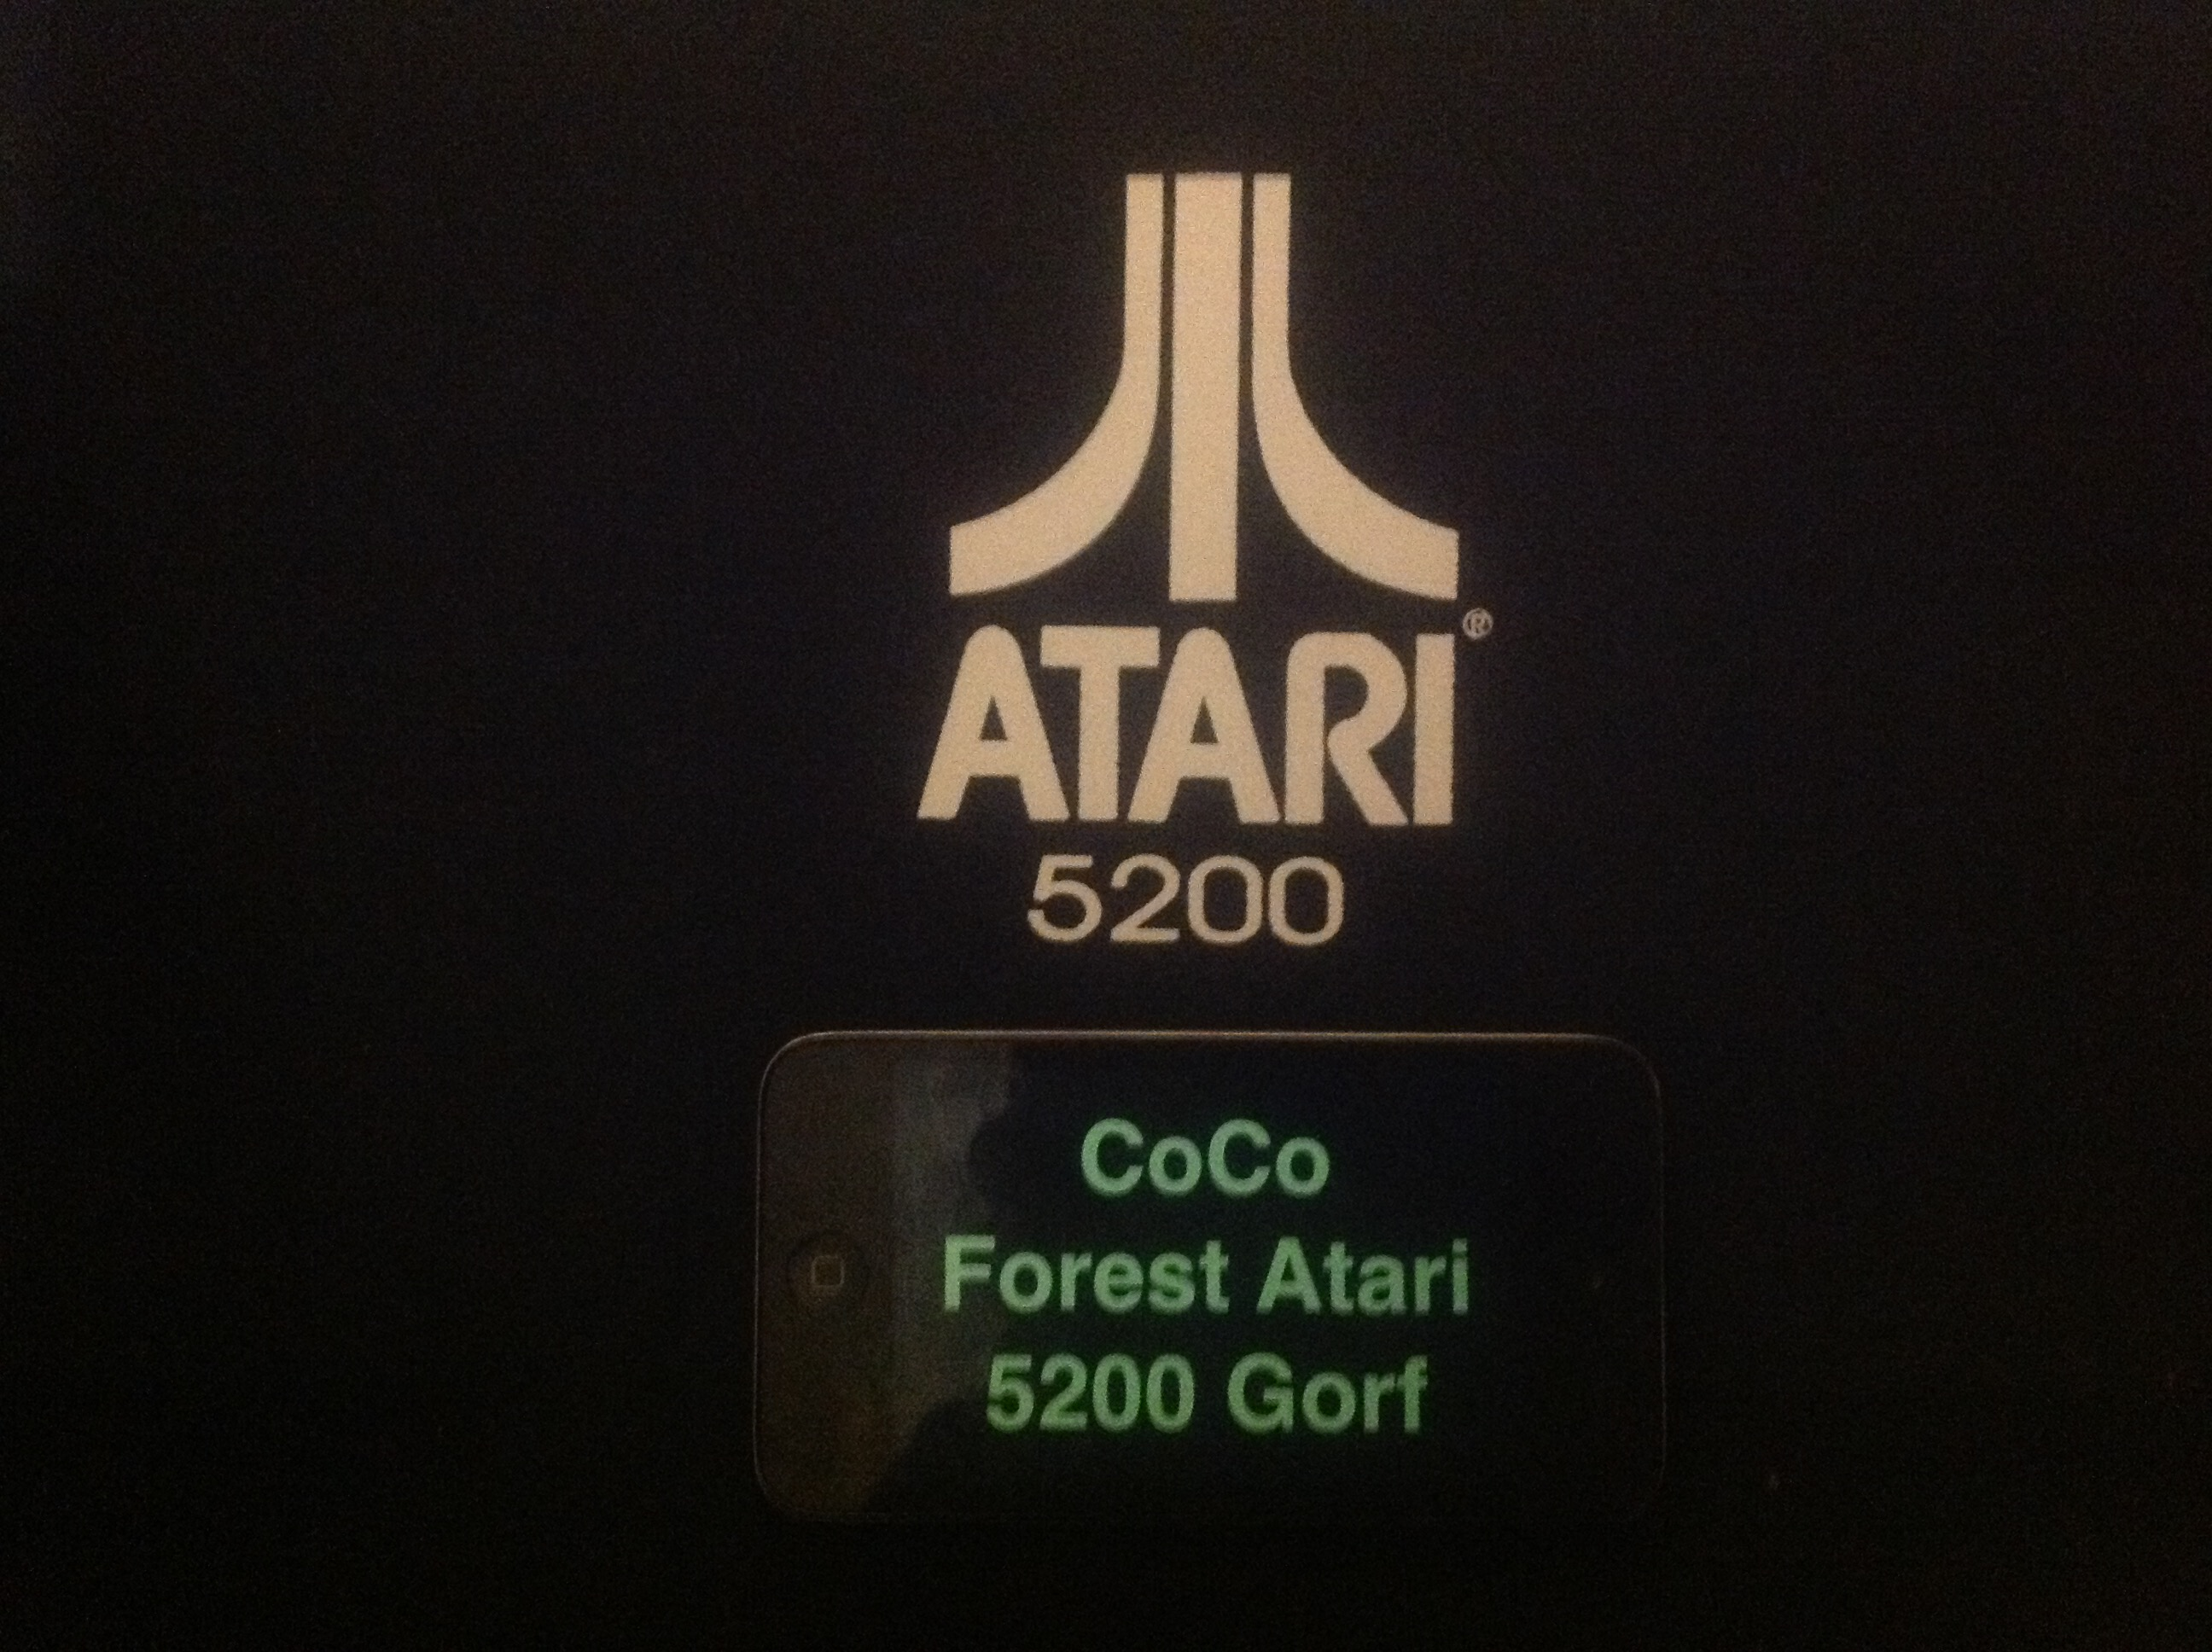 CoCoForest: Gorf (Atari 5200) 7,260 points on 2015-11-13 10:34:38